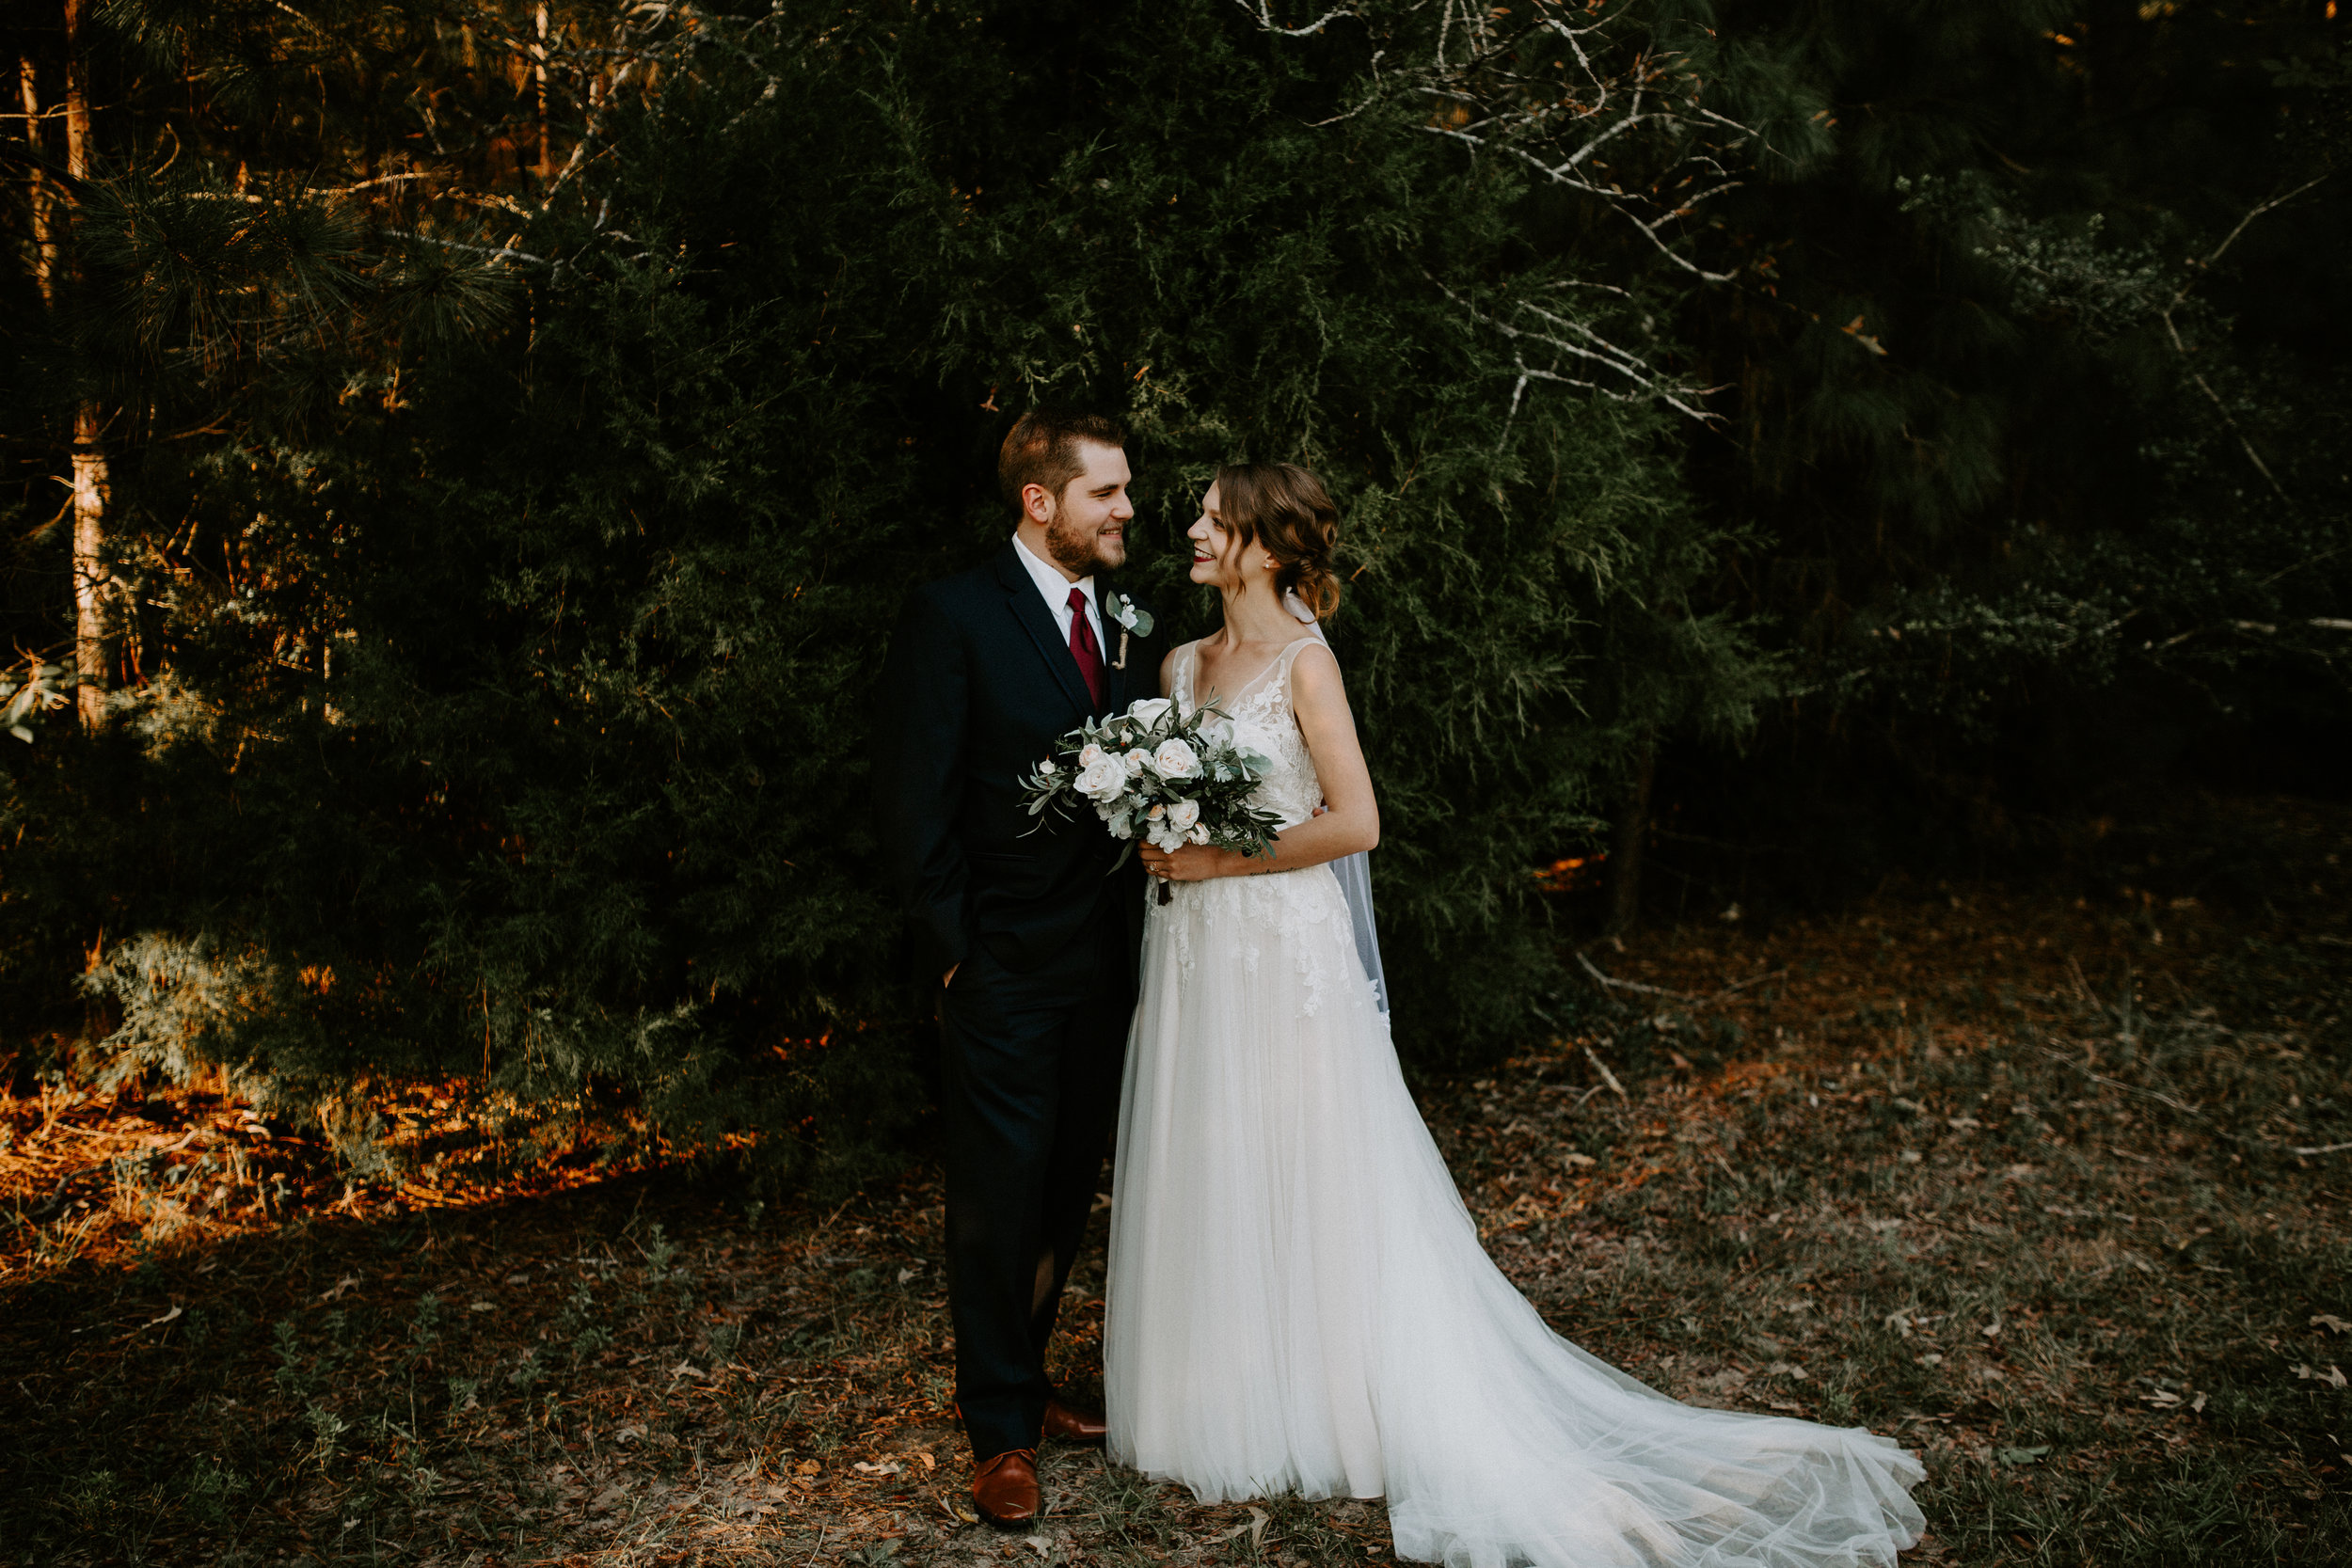 ASHLYN & JOSH - MAGNOLIA WEDDING